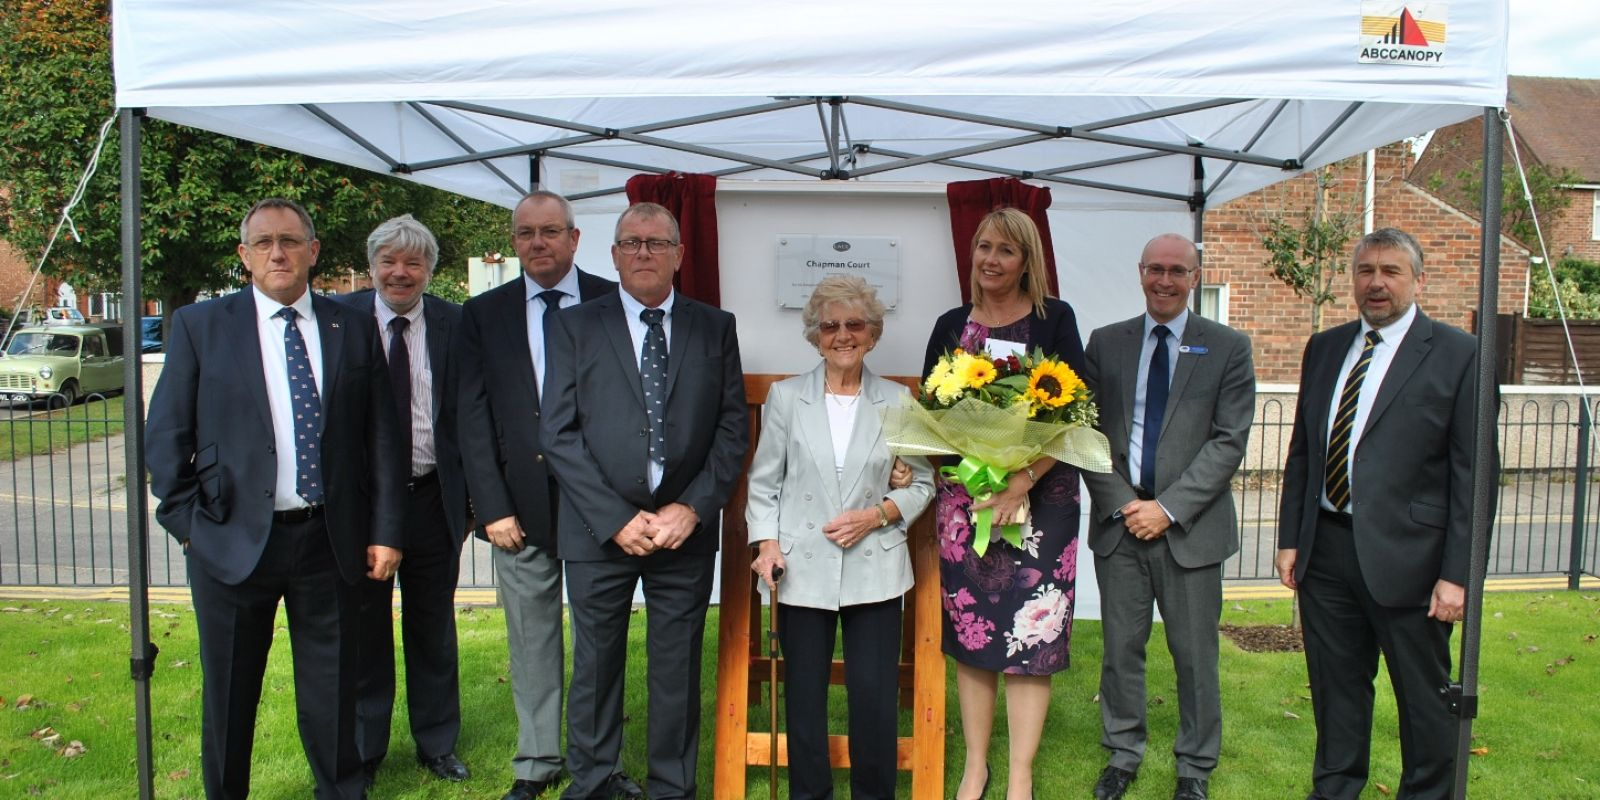 Guests and dignitaries at the opening of Chapman Court in Skegness